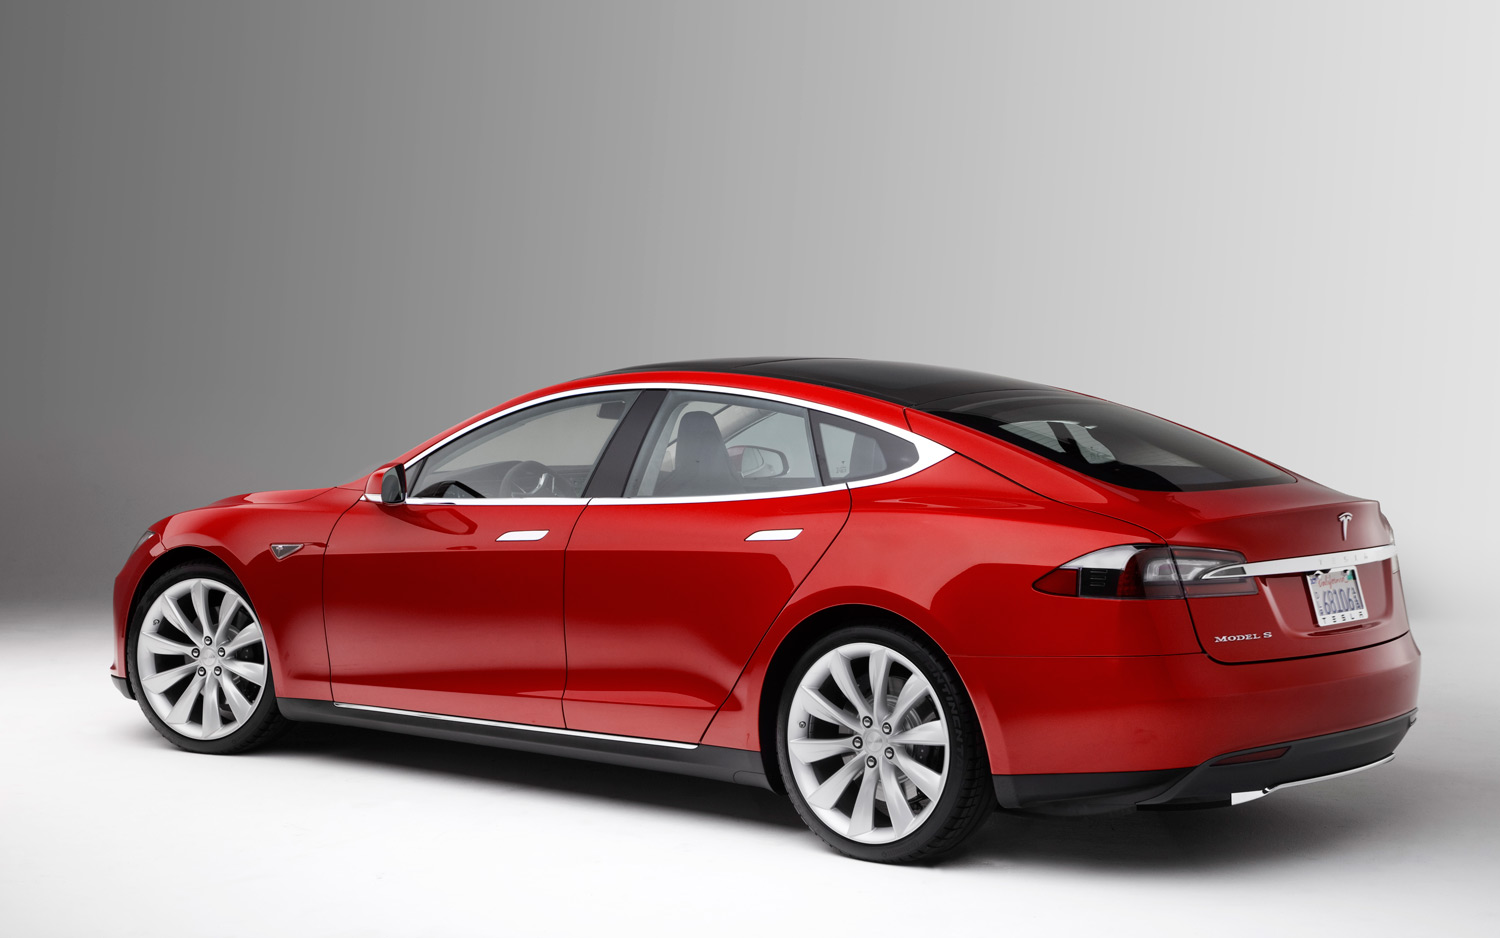 latest cars models tesla model s. Black Bedroom Furniture Sets. Home Design Ideas